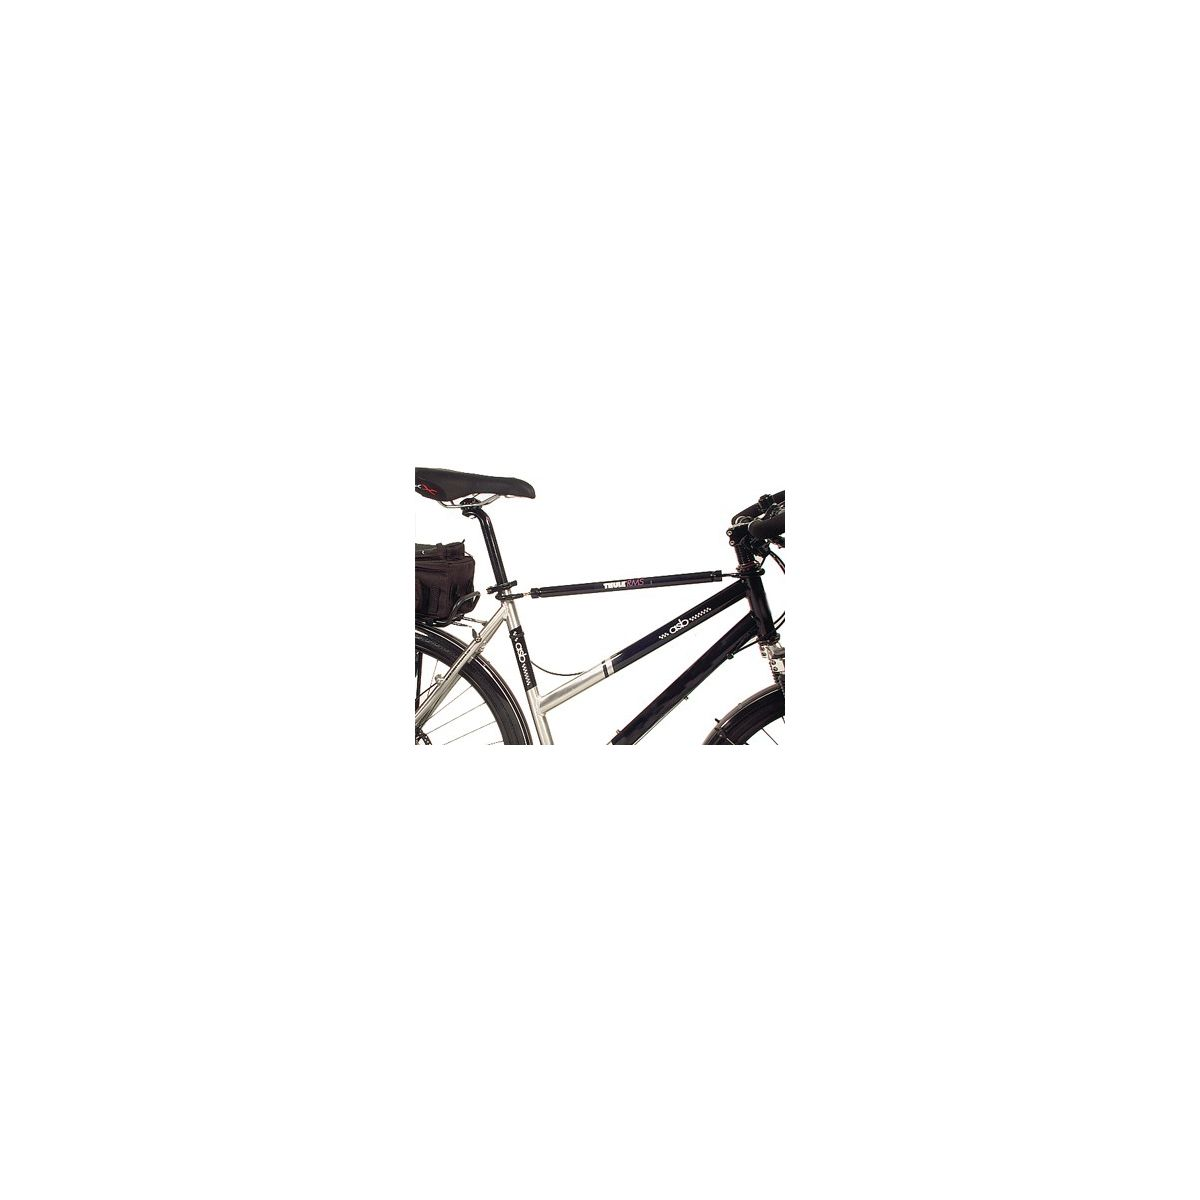 Buy Thule Lady Bike Adapter 982 | ROSE Bikes